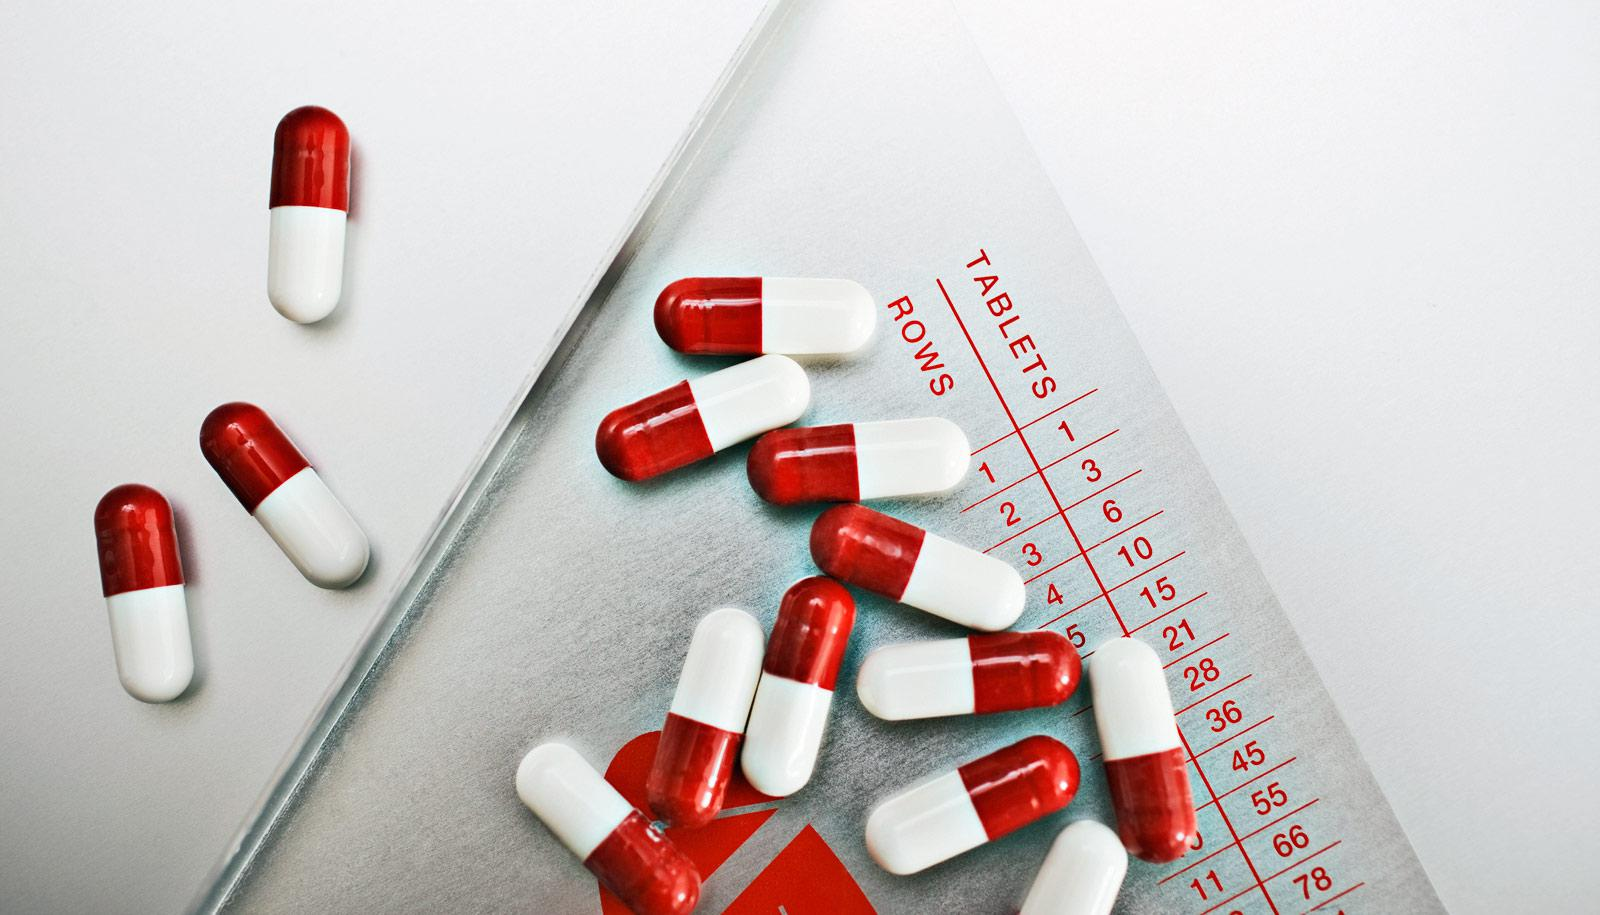 red and white capsules - late-stage prostate cancer